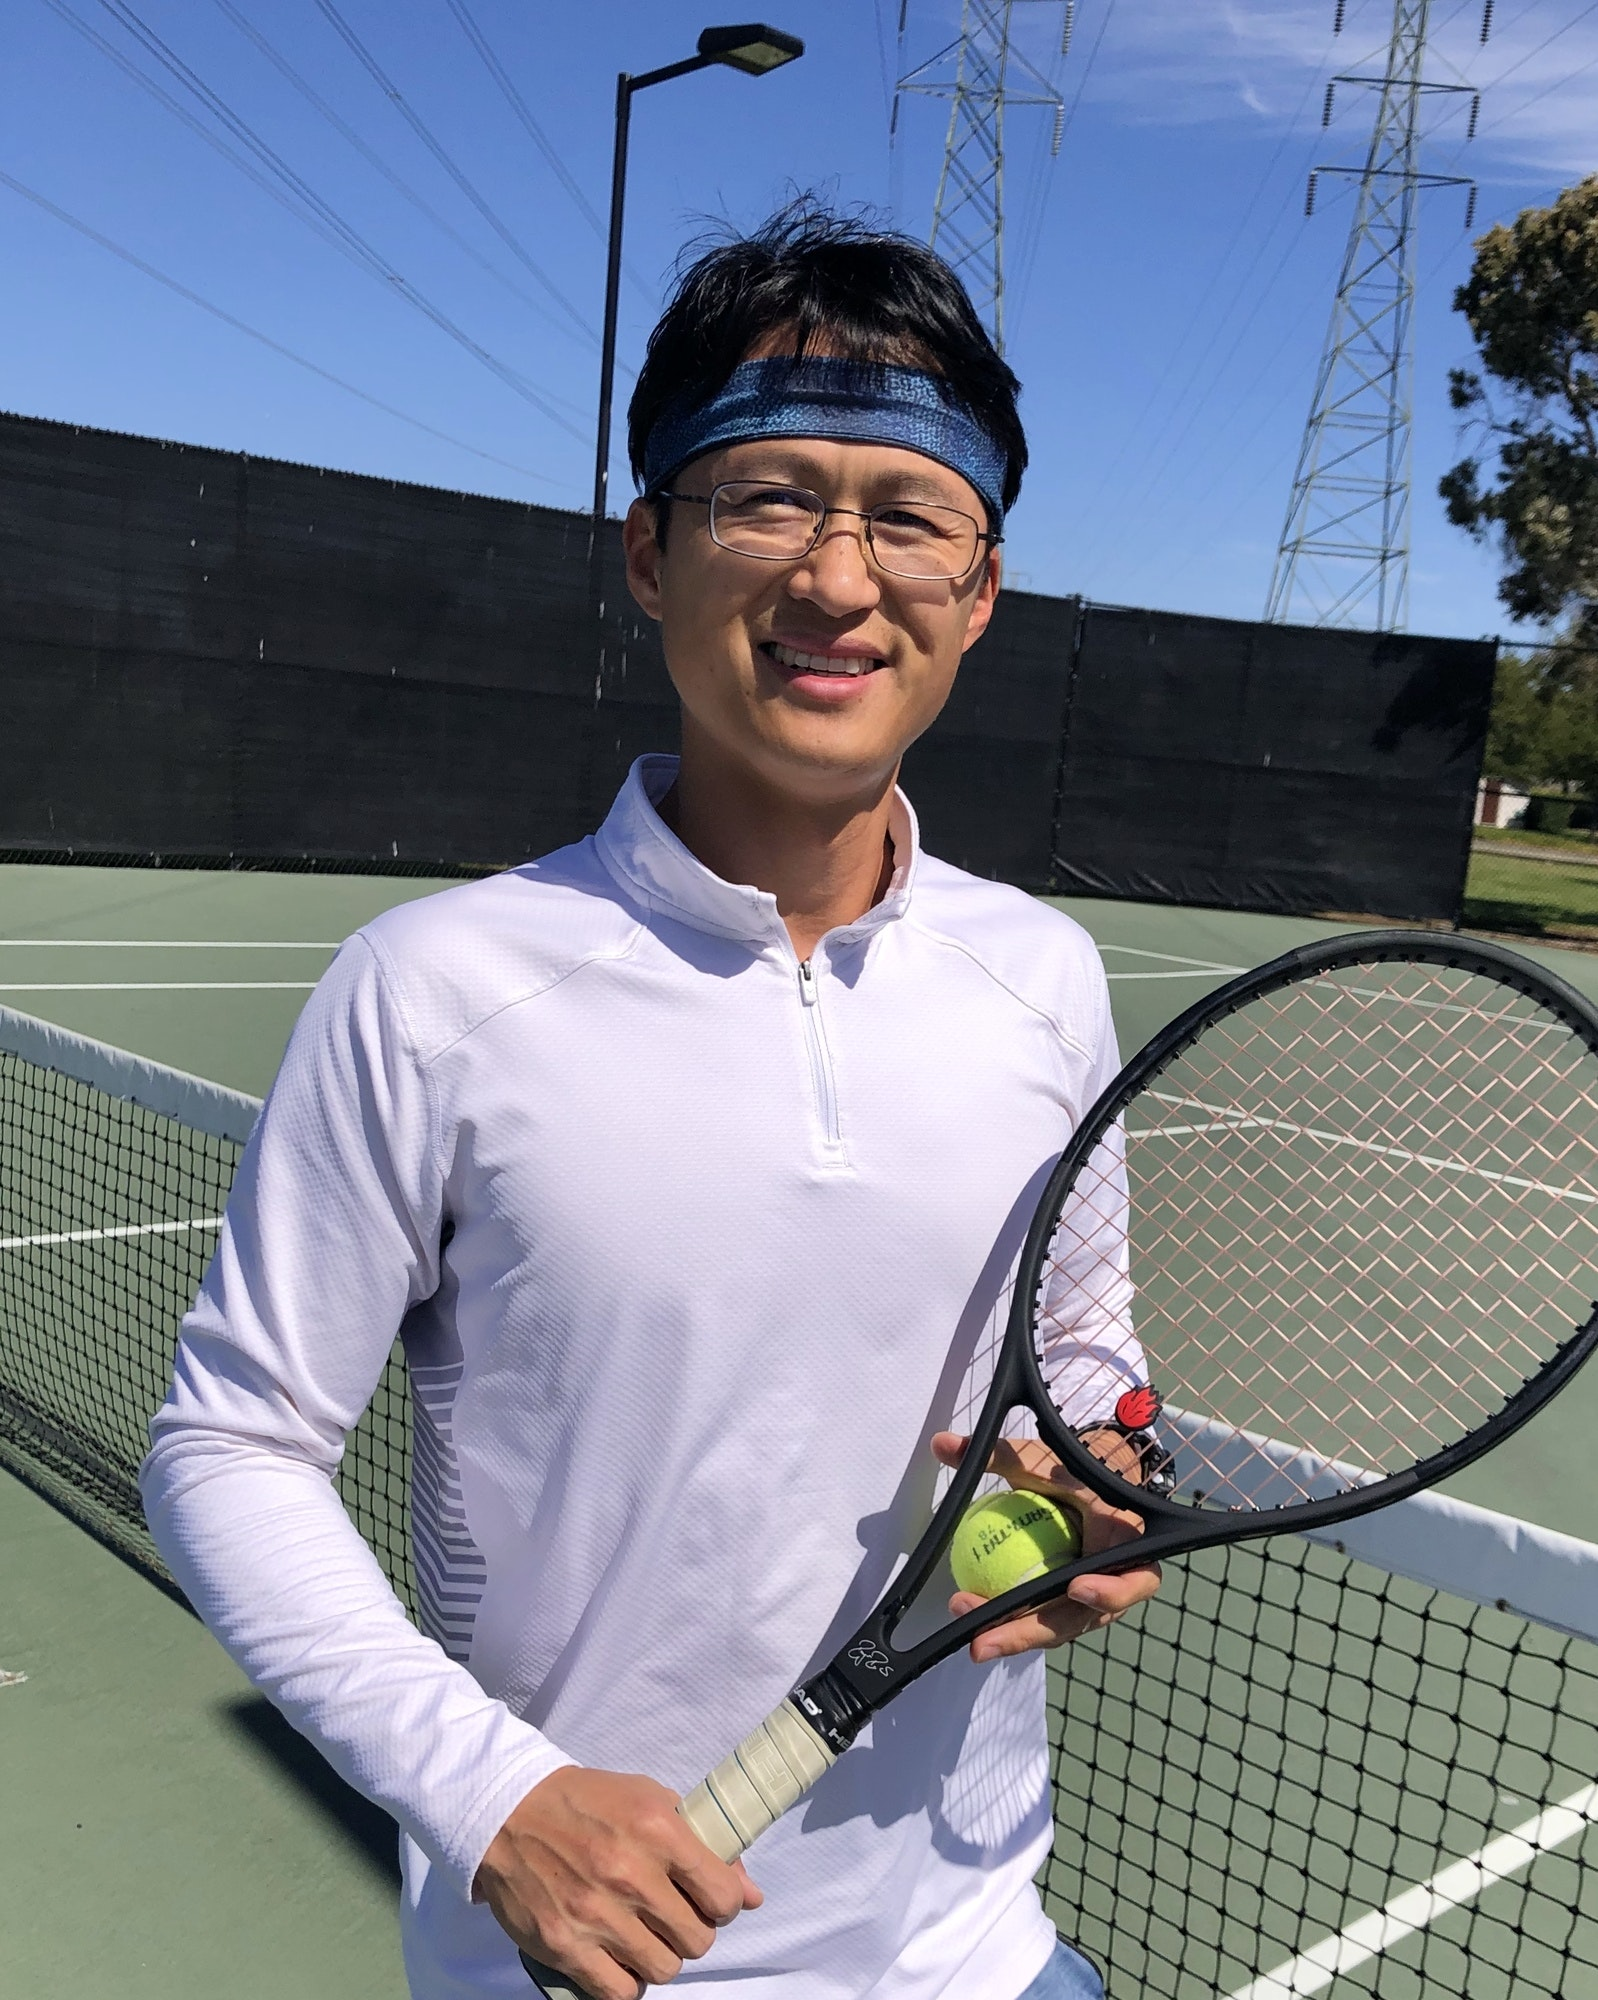 Jason Z. teaches tennis lessons in Foster City, CA